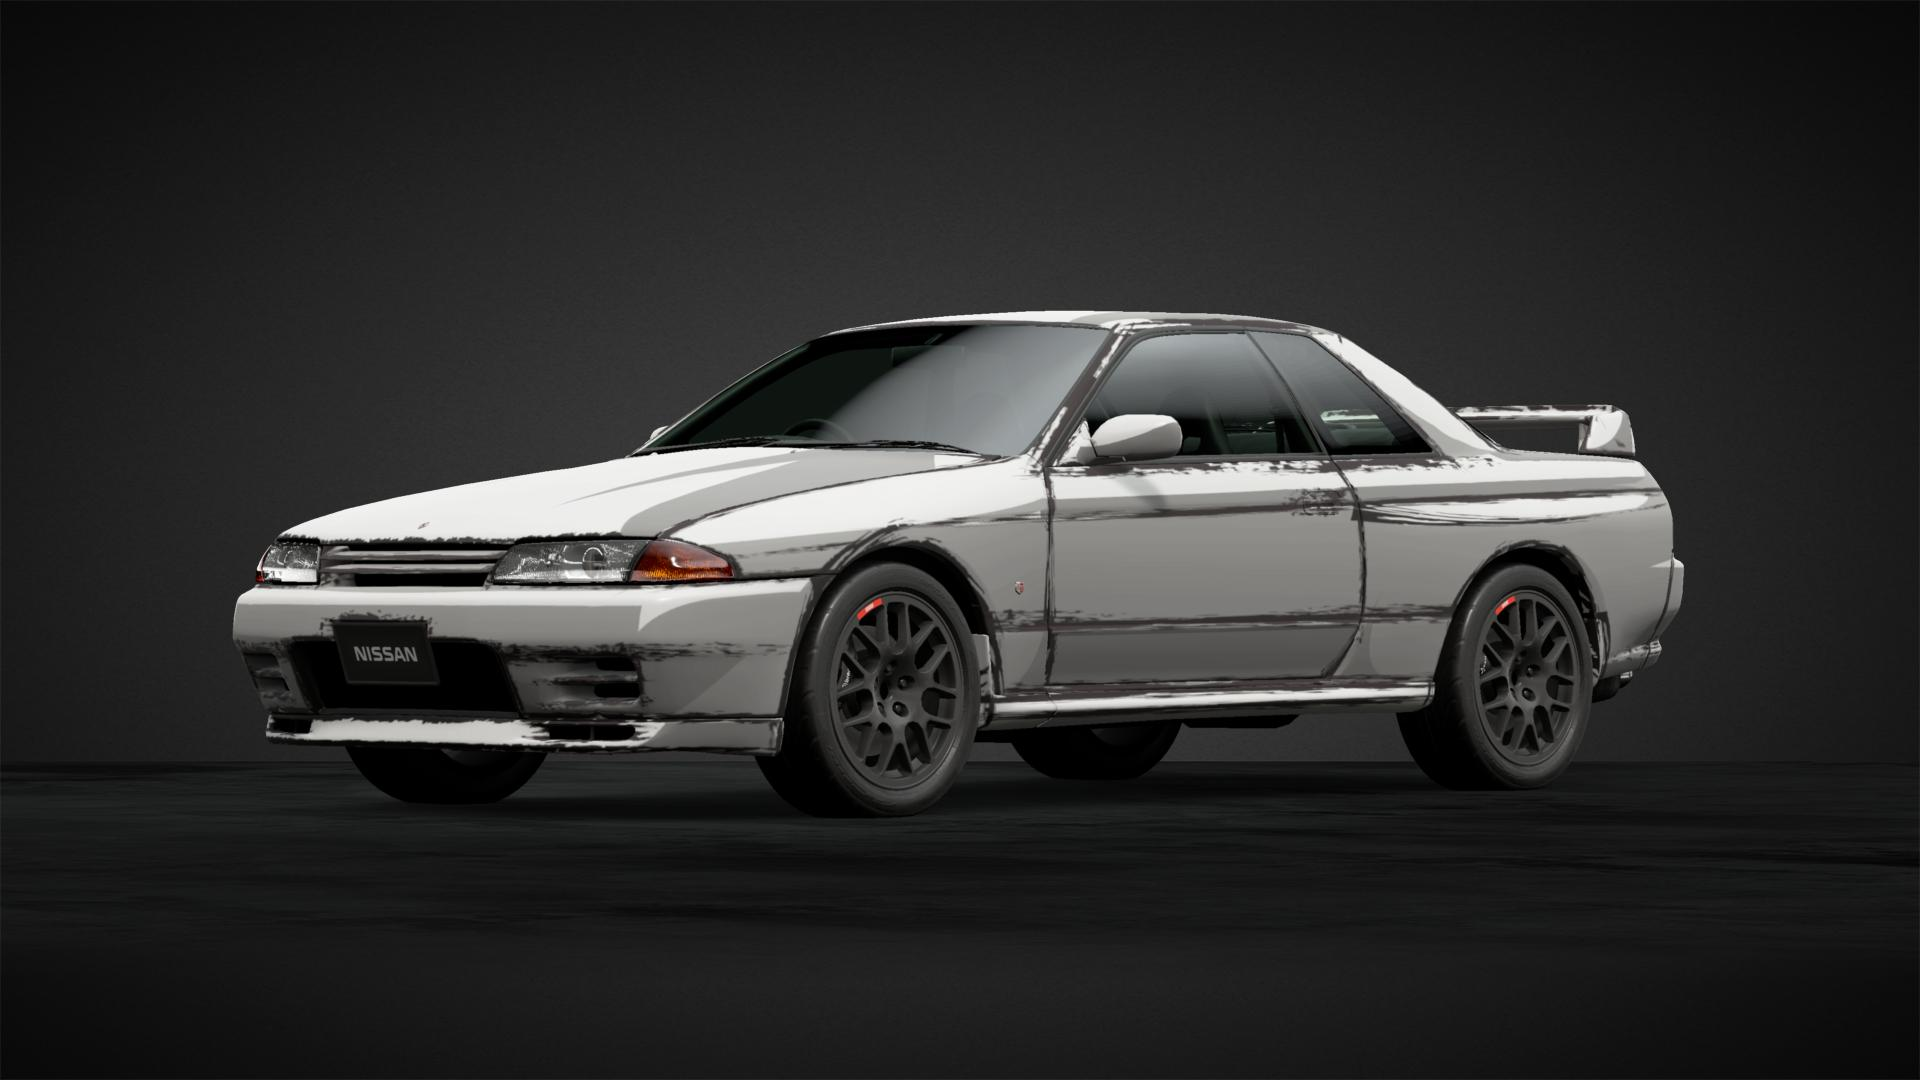 Skyline GT R V・spec II (R32) U002794. Add To Collection. 10353679. Car Livery.  Skyline ...